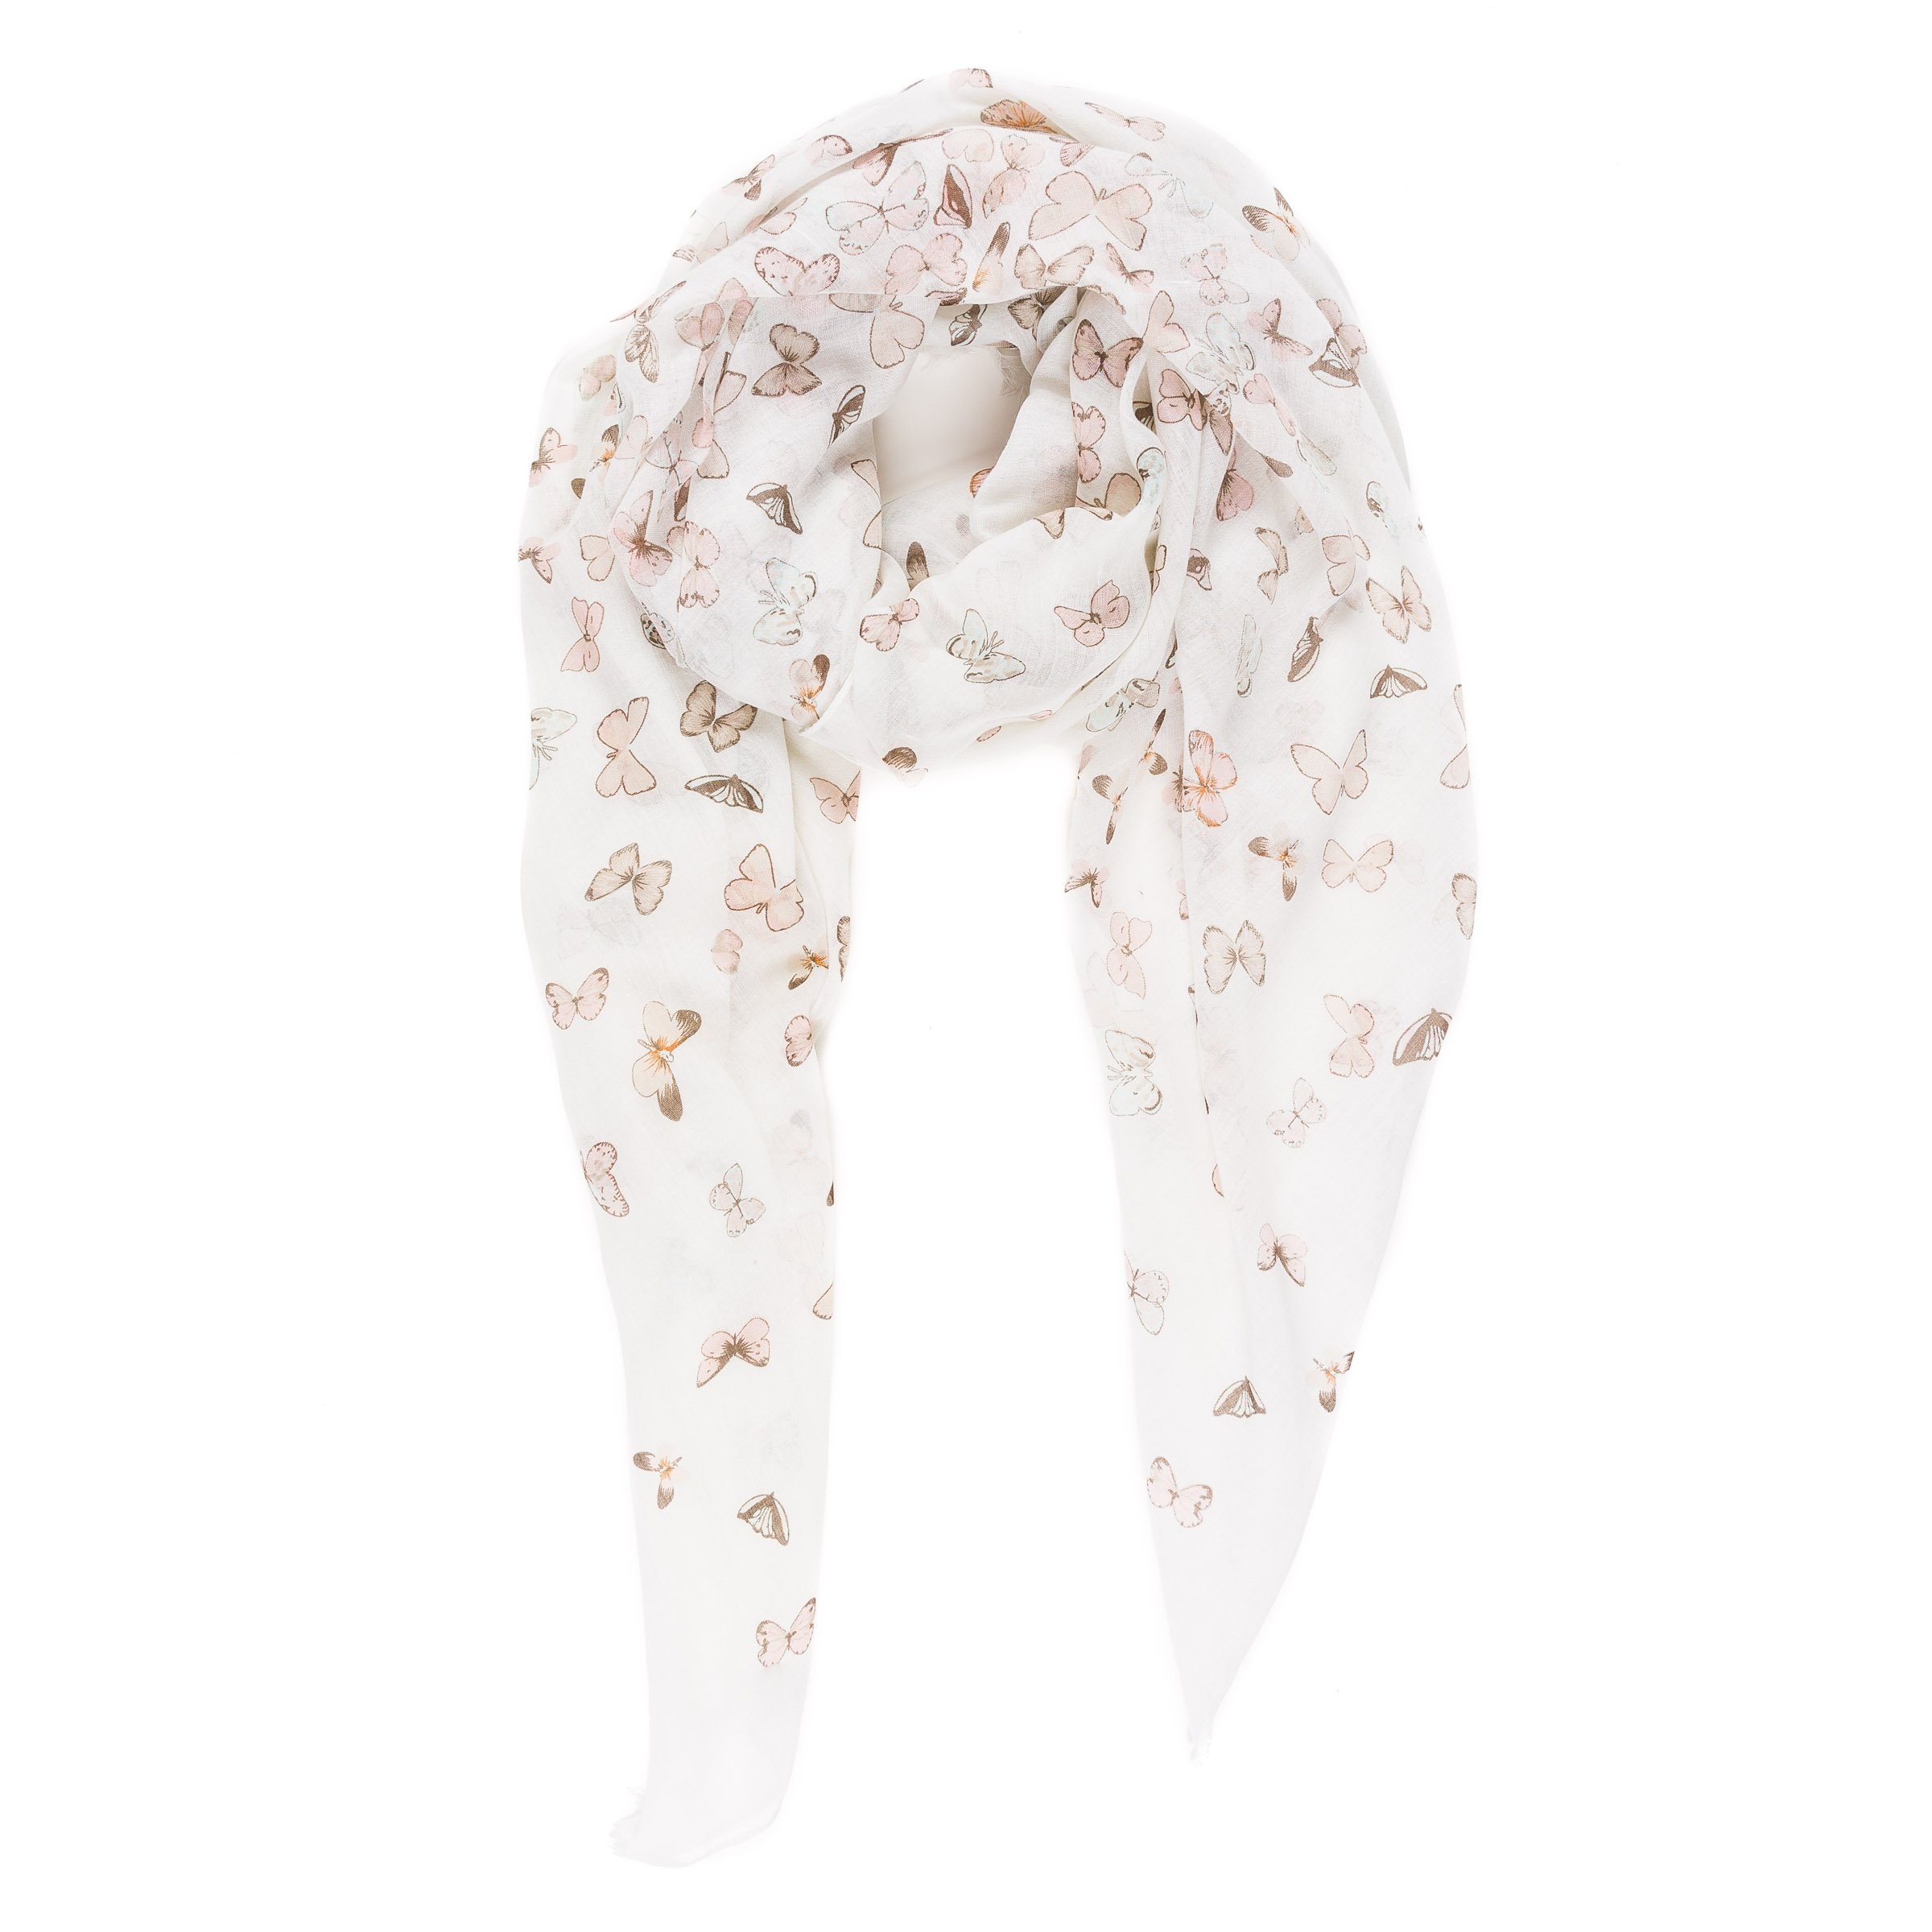 Scarf for Women Lightweight Butterfly Fashion Fall Winter Scarves Shawl Wraps by Melifluos (SS23) by MELIFLUOS DESIGNED IN SPAIN (Image #3)